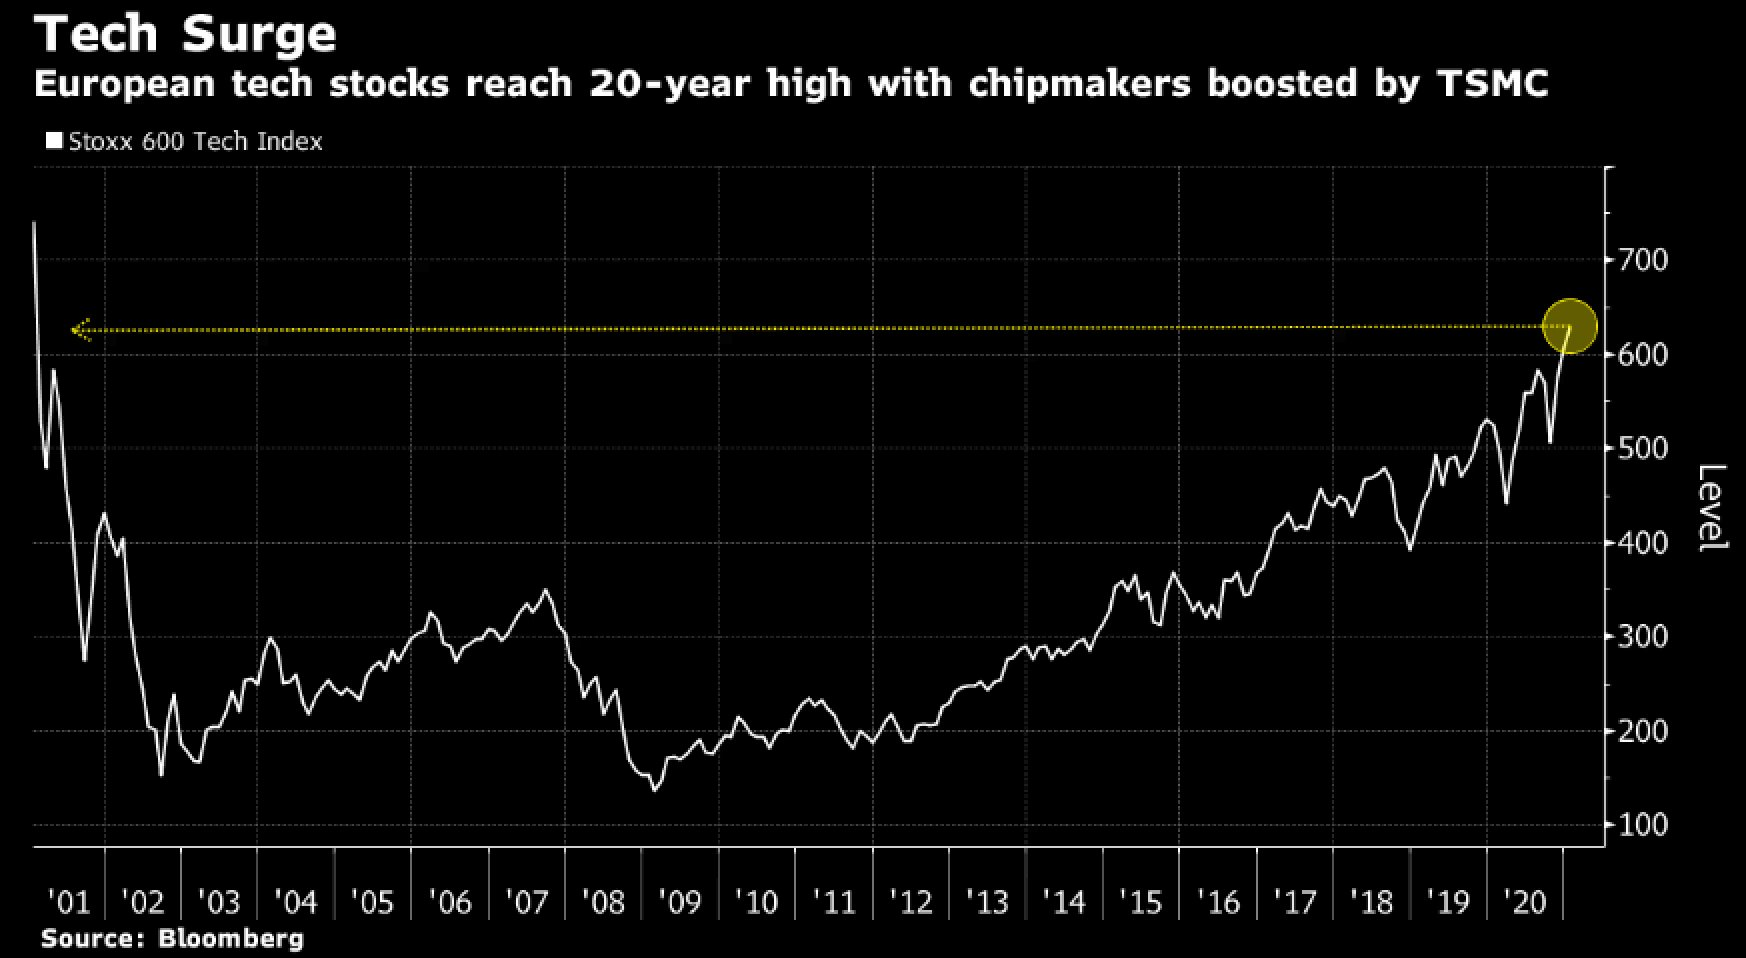 European tech stocks reach a 20-year high